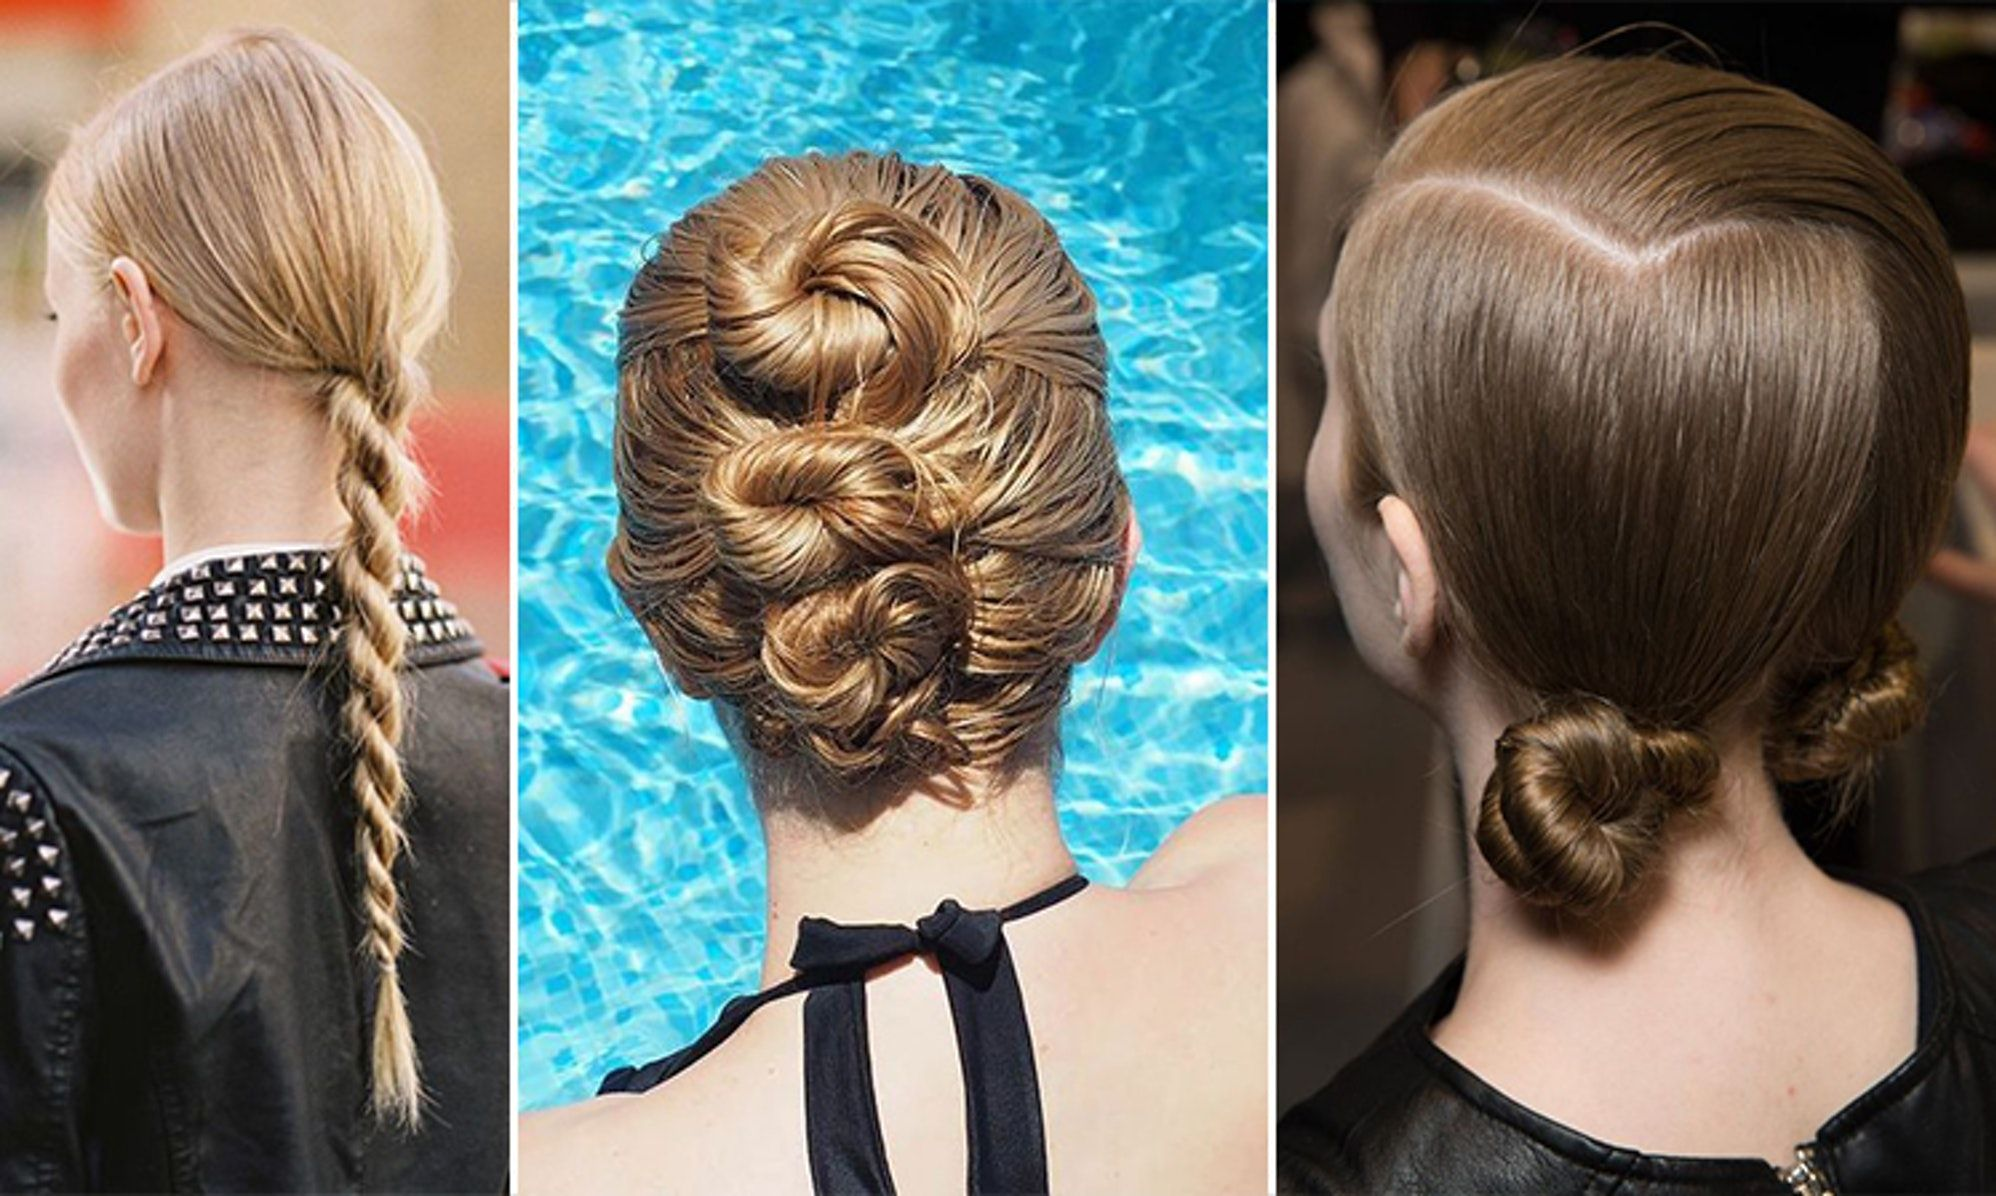 6 Easy Hairstyles For Wet Hair You Can Wear Before, During, & After Pool Parties | Older women ...